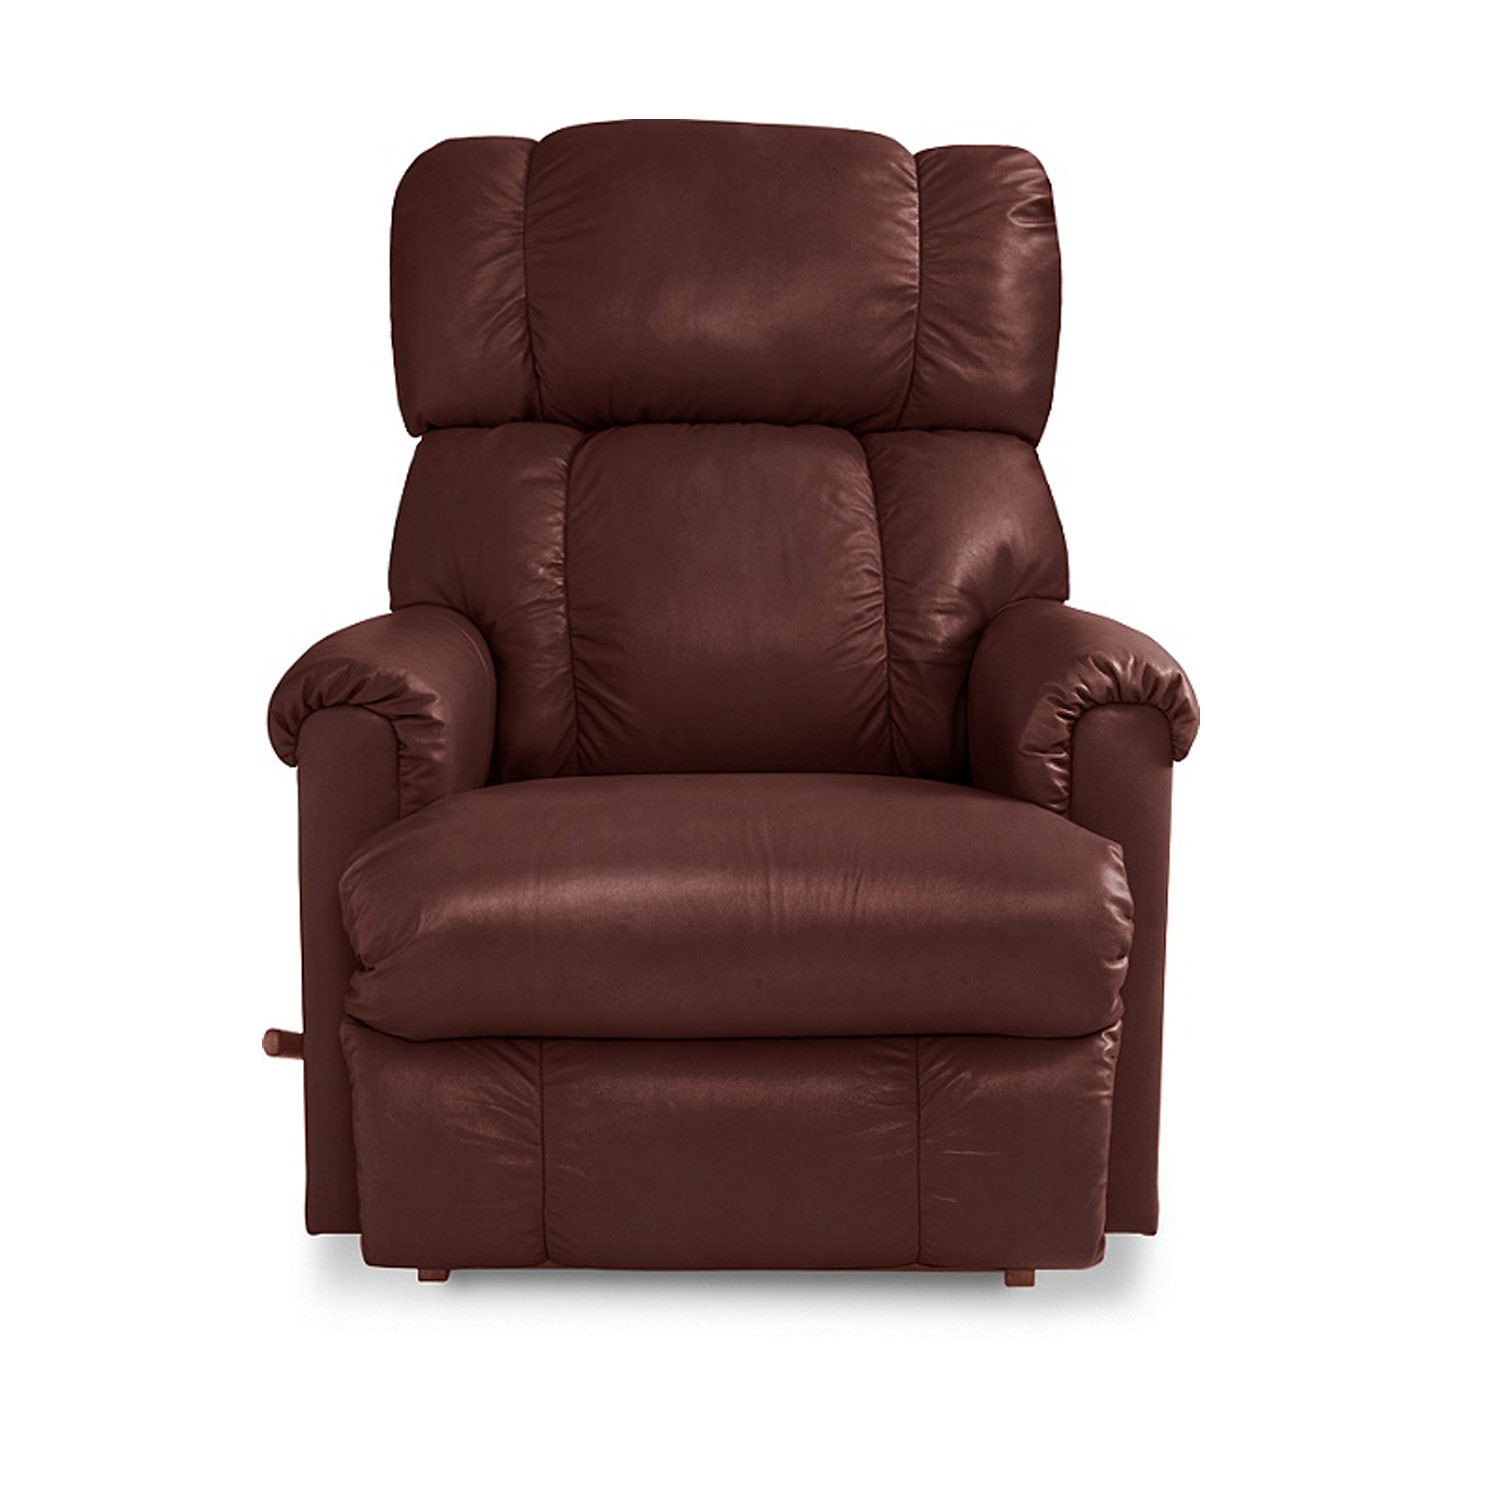 lazy boy chairs reclining beach portable leather recliner la z furniture reese